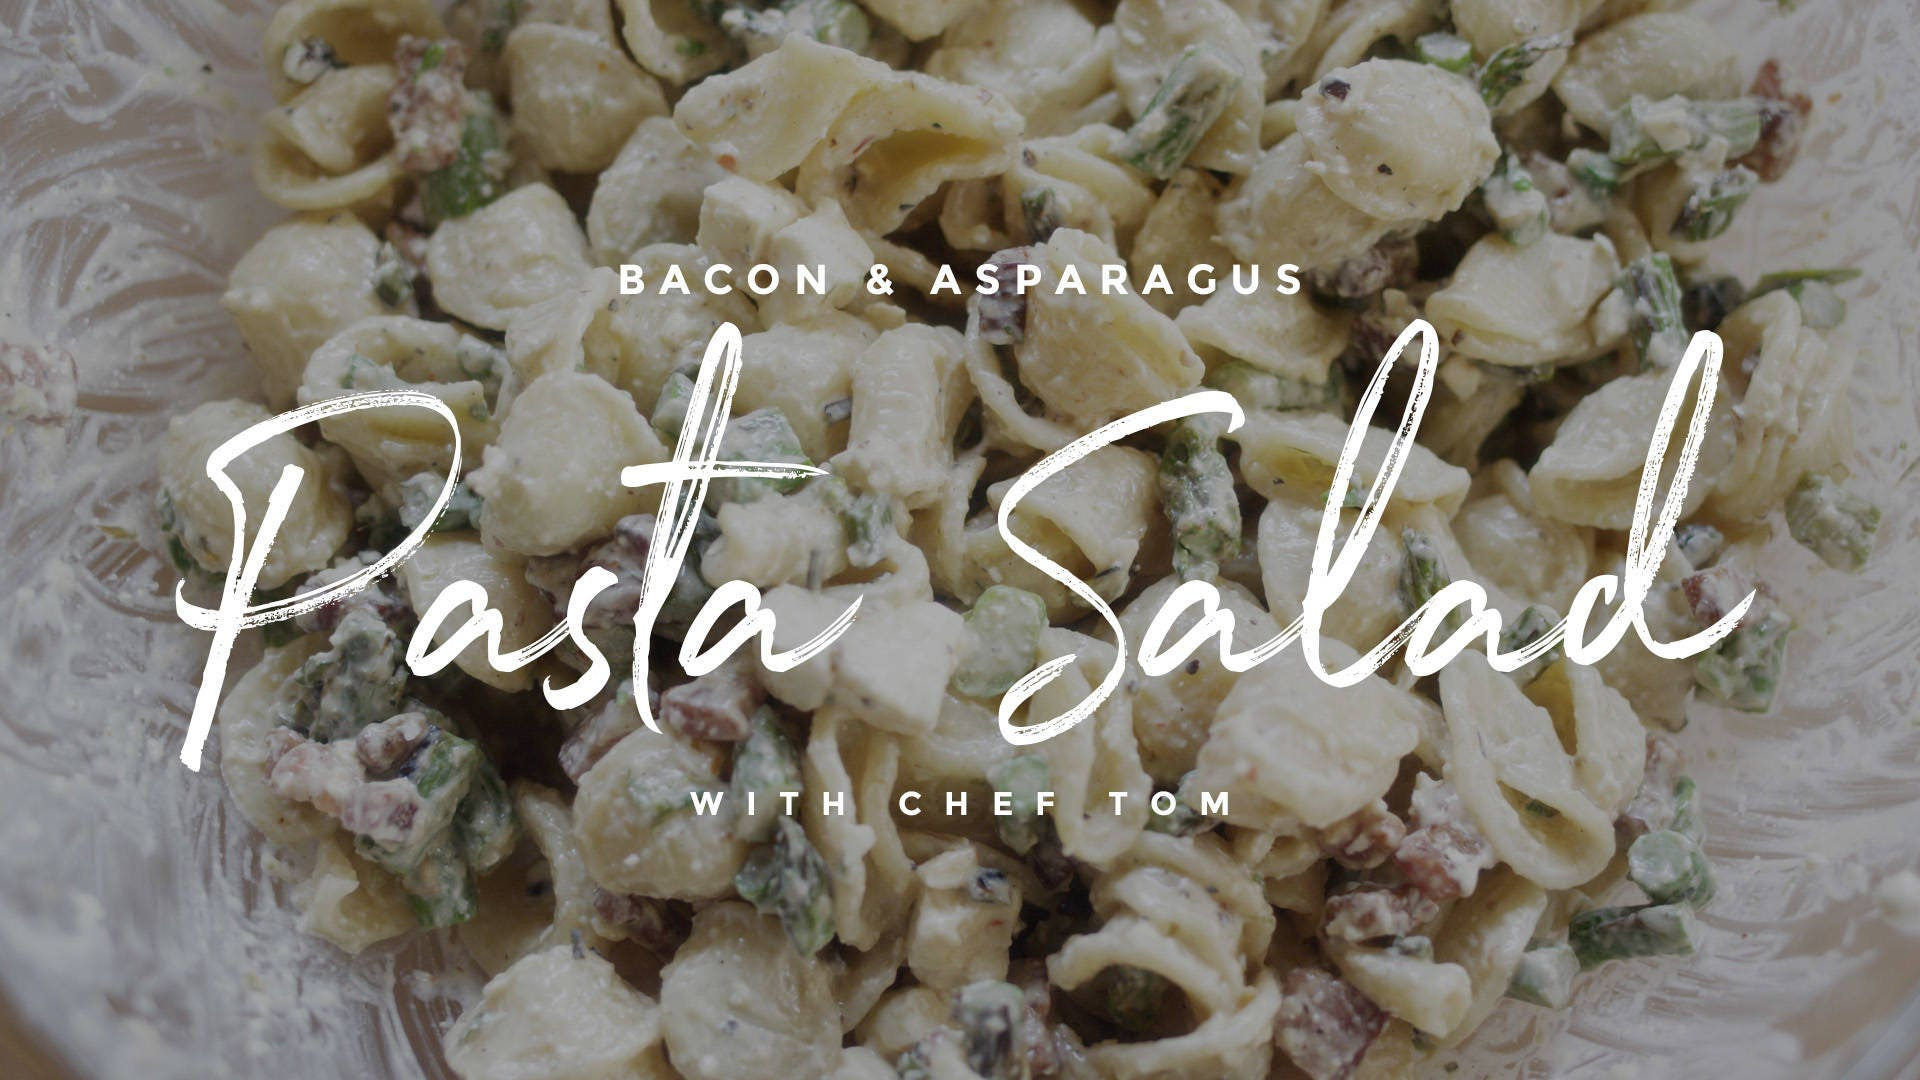 How to make Bacon & Asparagus Pasta Salad